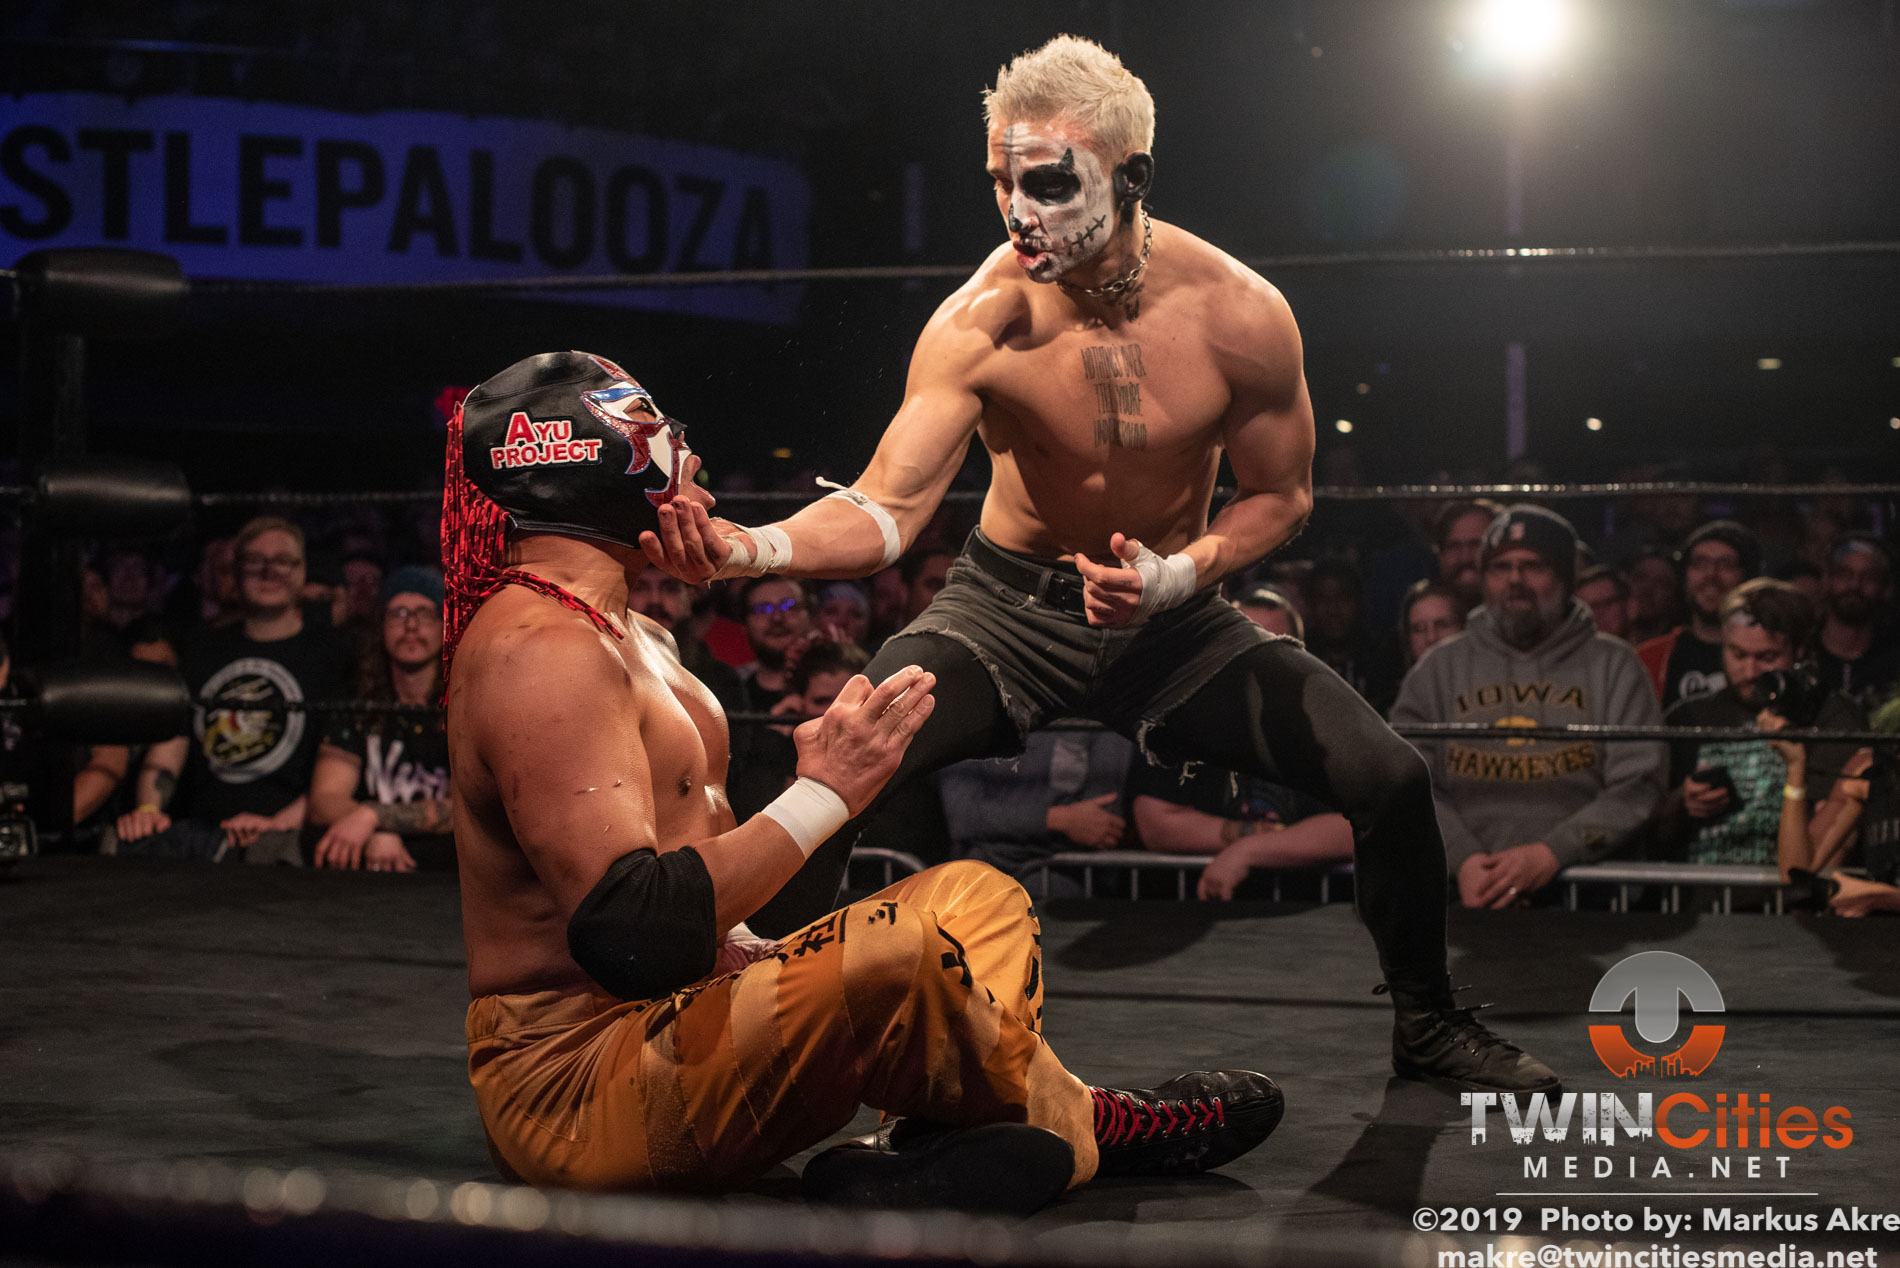 Wrestlepalooza - Match 5-7